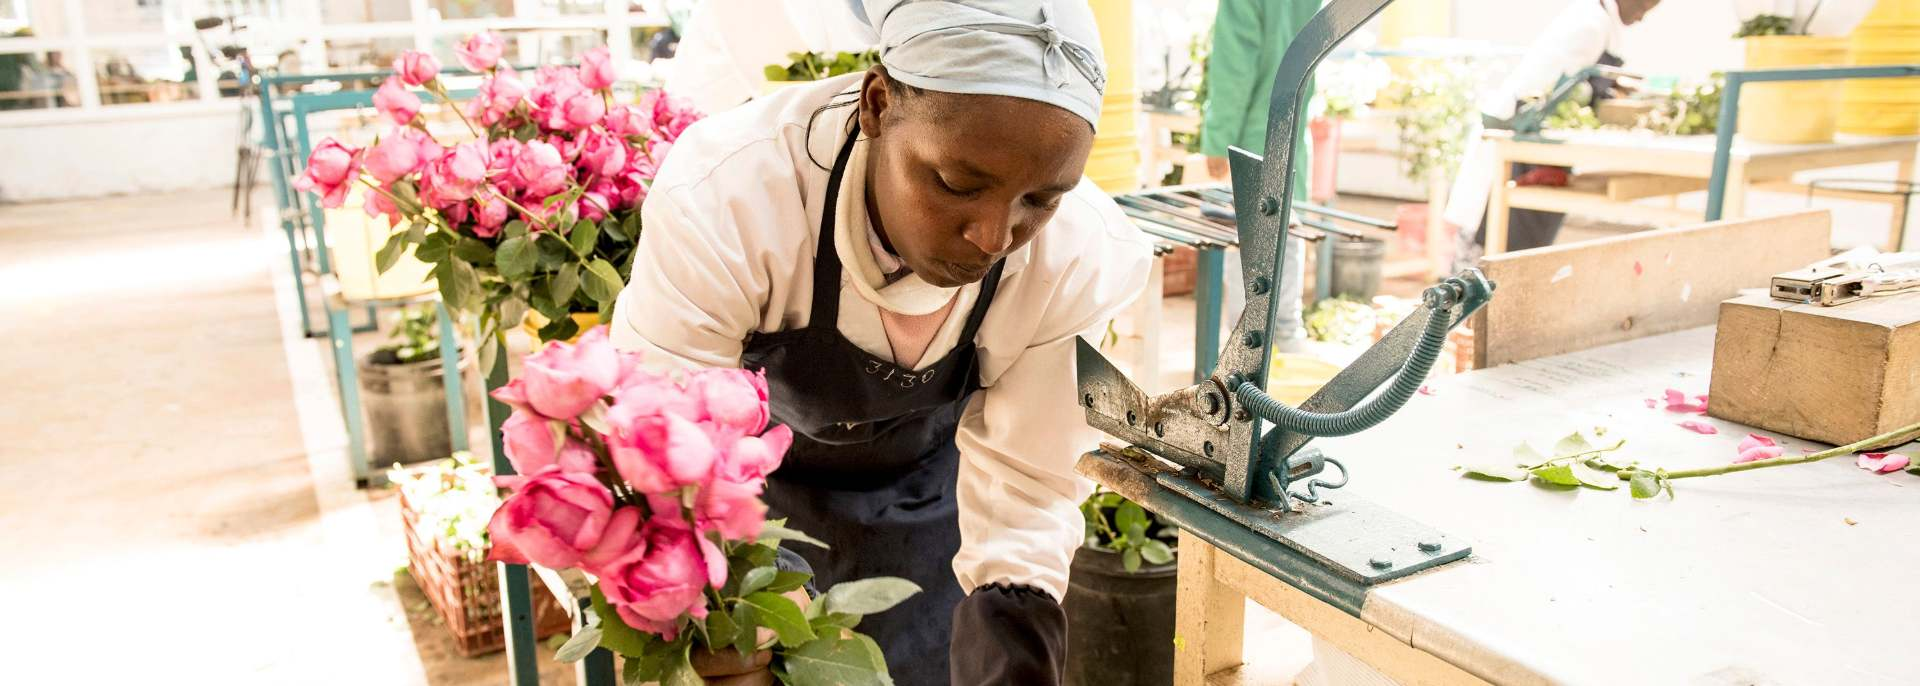 A manual for strengthening women's leadership in the horticultural sector